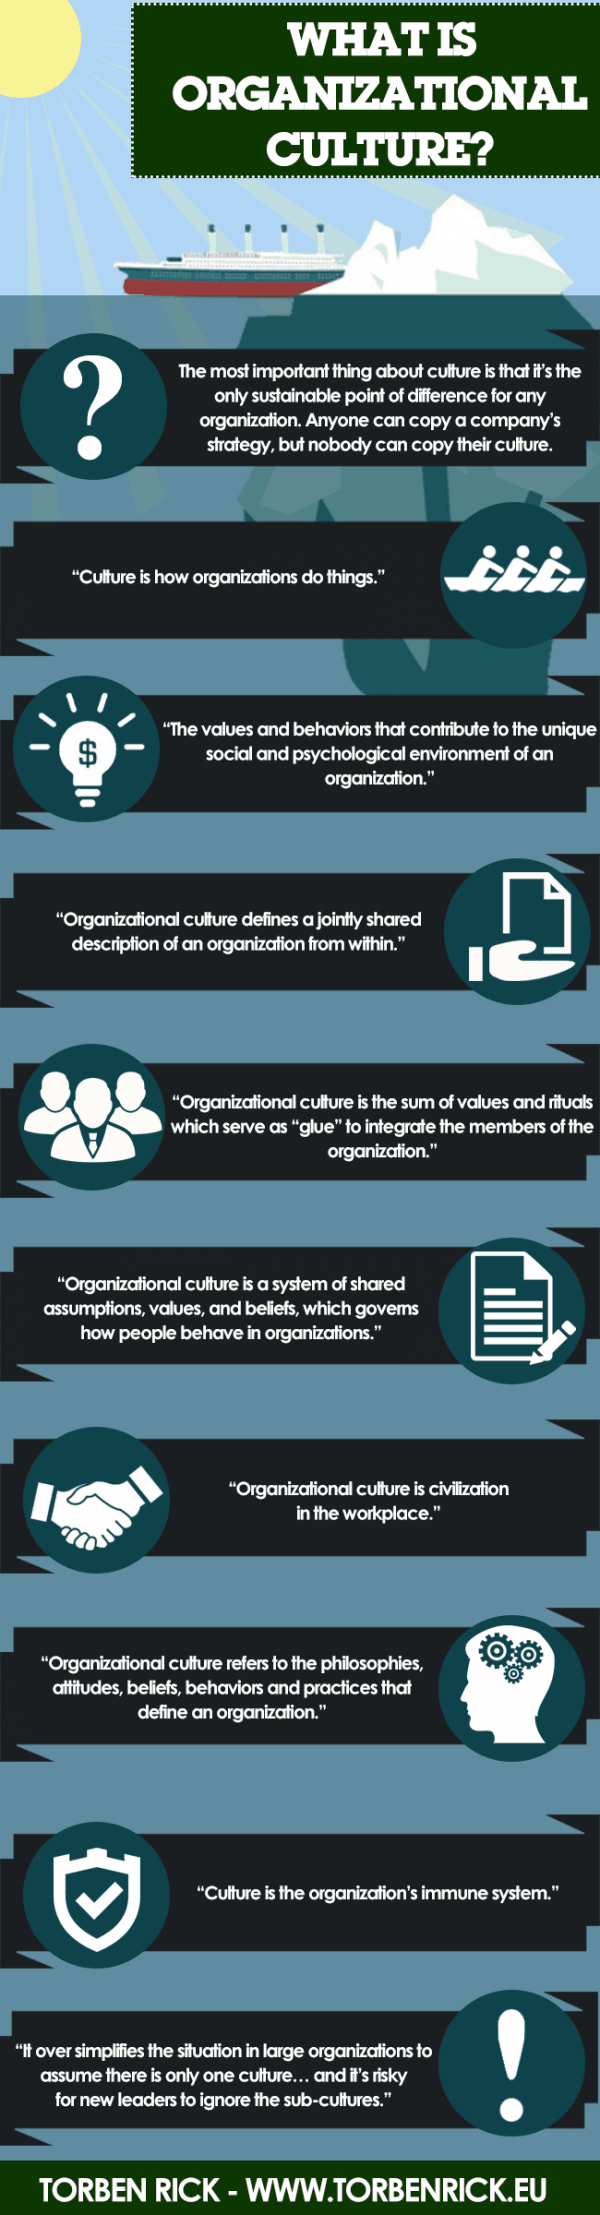 what is organizational culture what is organizational culture